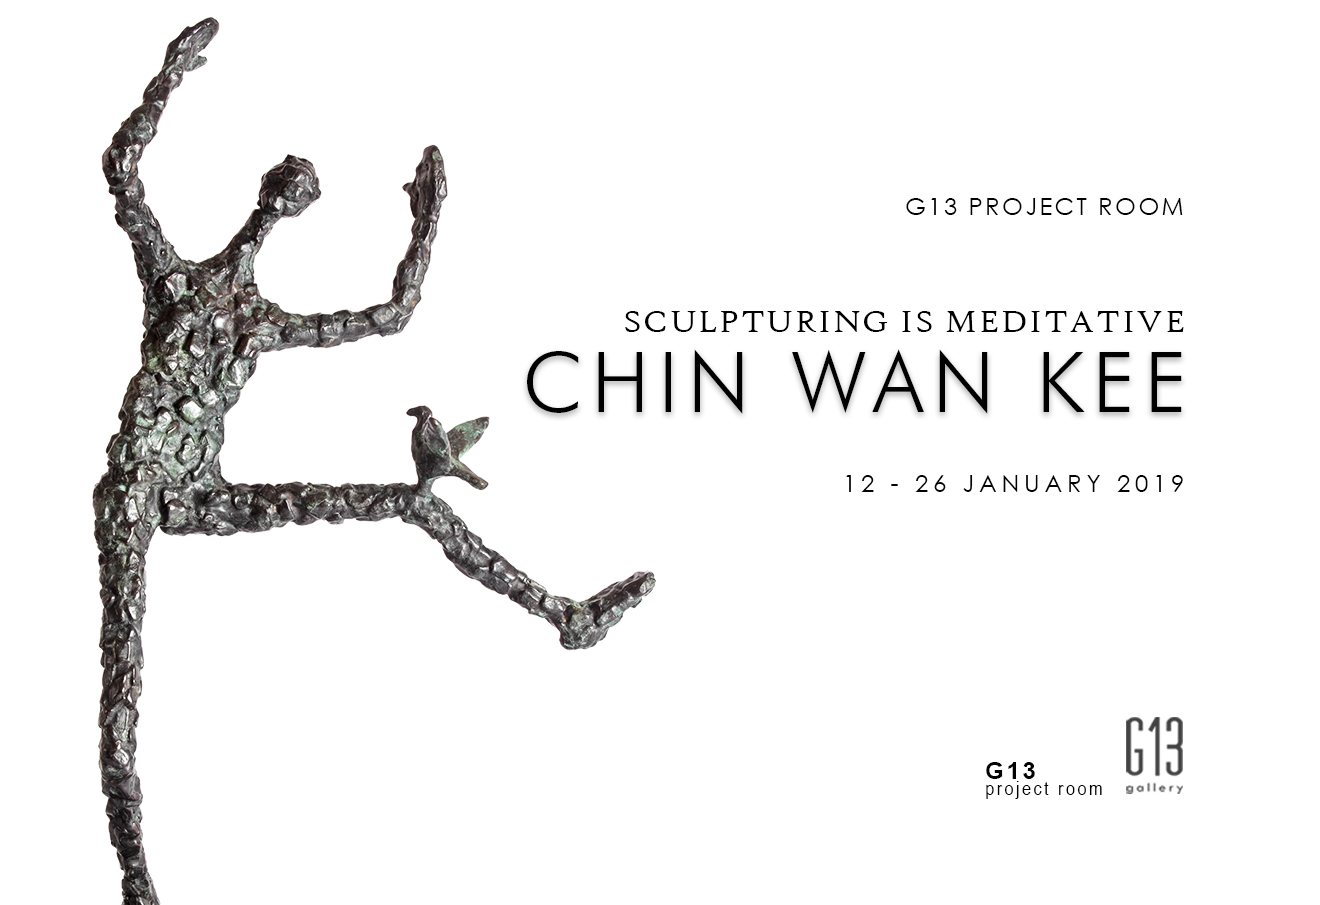 G13 Project Room: Sculpturing is Meditative by Chin Wan Kee